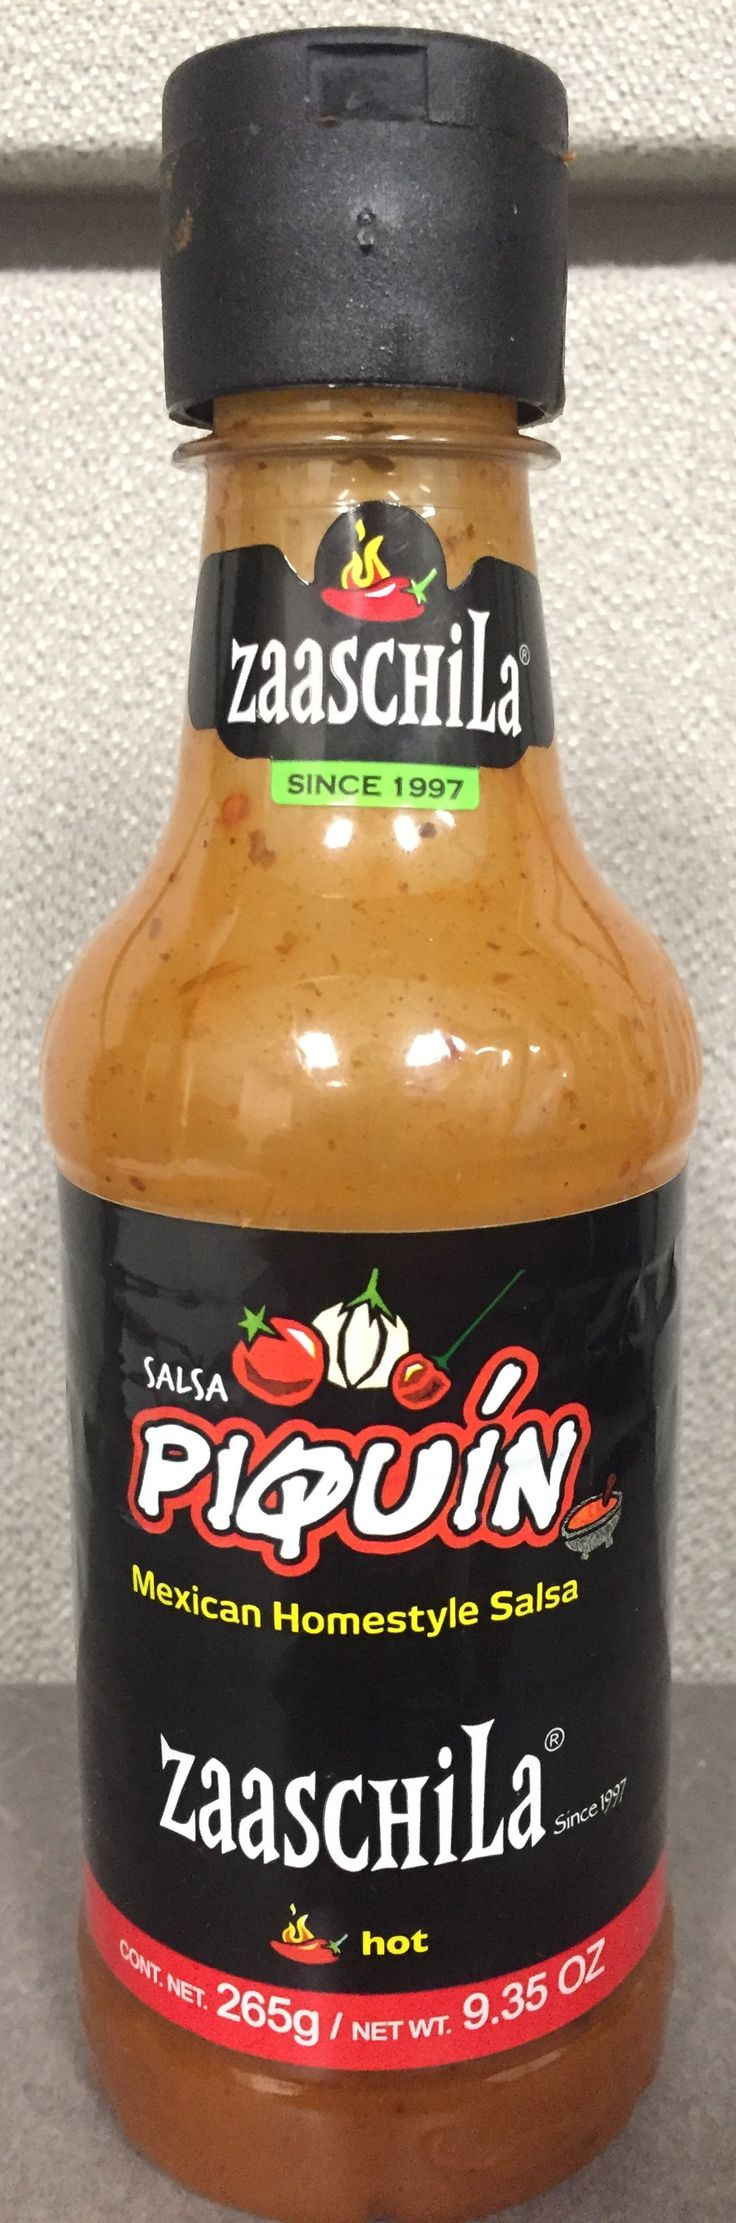 Handyman Reviews 32: Zaaschila Piquin Hot Sauce & Doritos Incognita #spicy #food #hot #foodporn #delicious #yummy #foodie #dinner #dirty